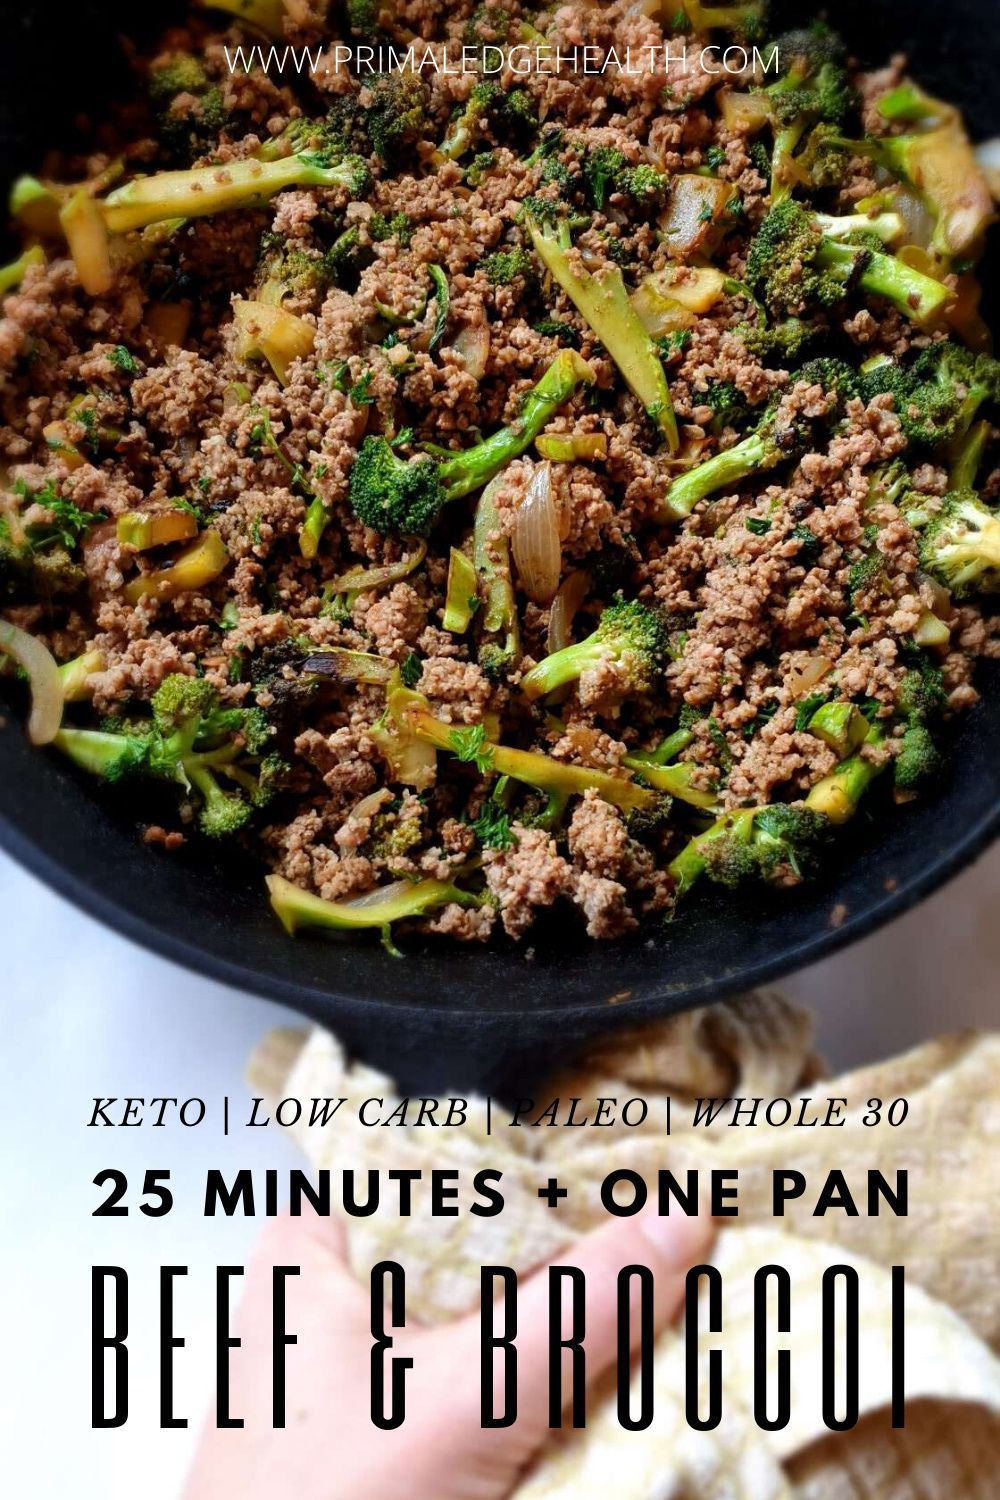 Ground Beef And Broccoli Stir Fry Keto Low Carb Dairy Free Paleo Recipe In 2020 Ground Beef And Broccoli Ground Beef Recipes For Dinner Ground Beef